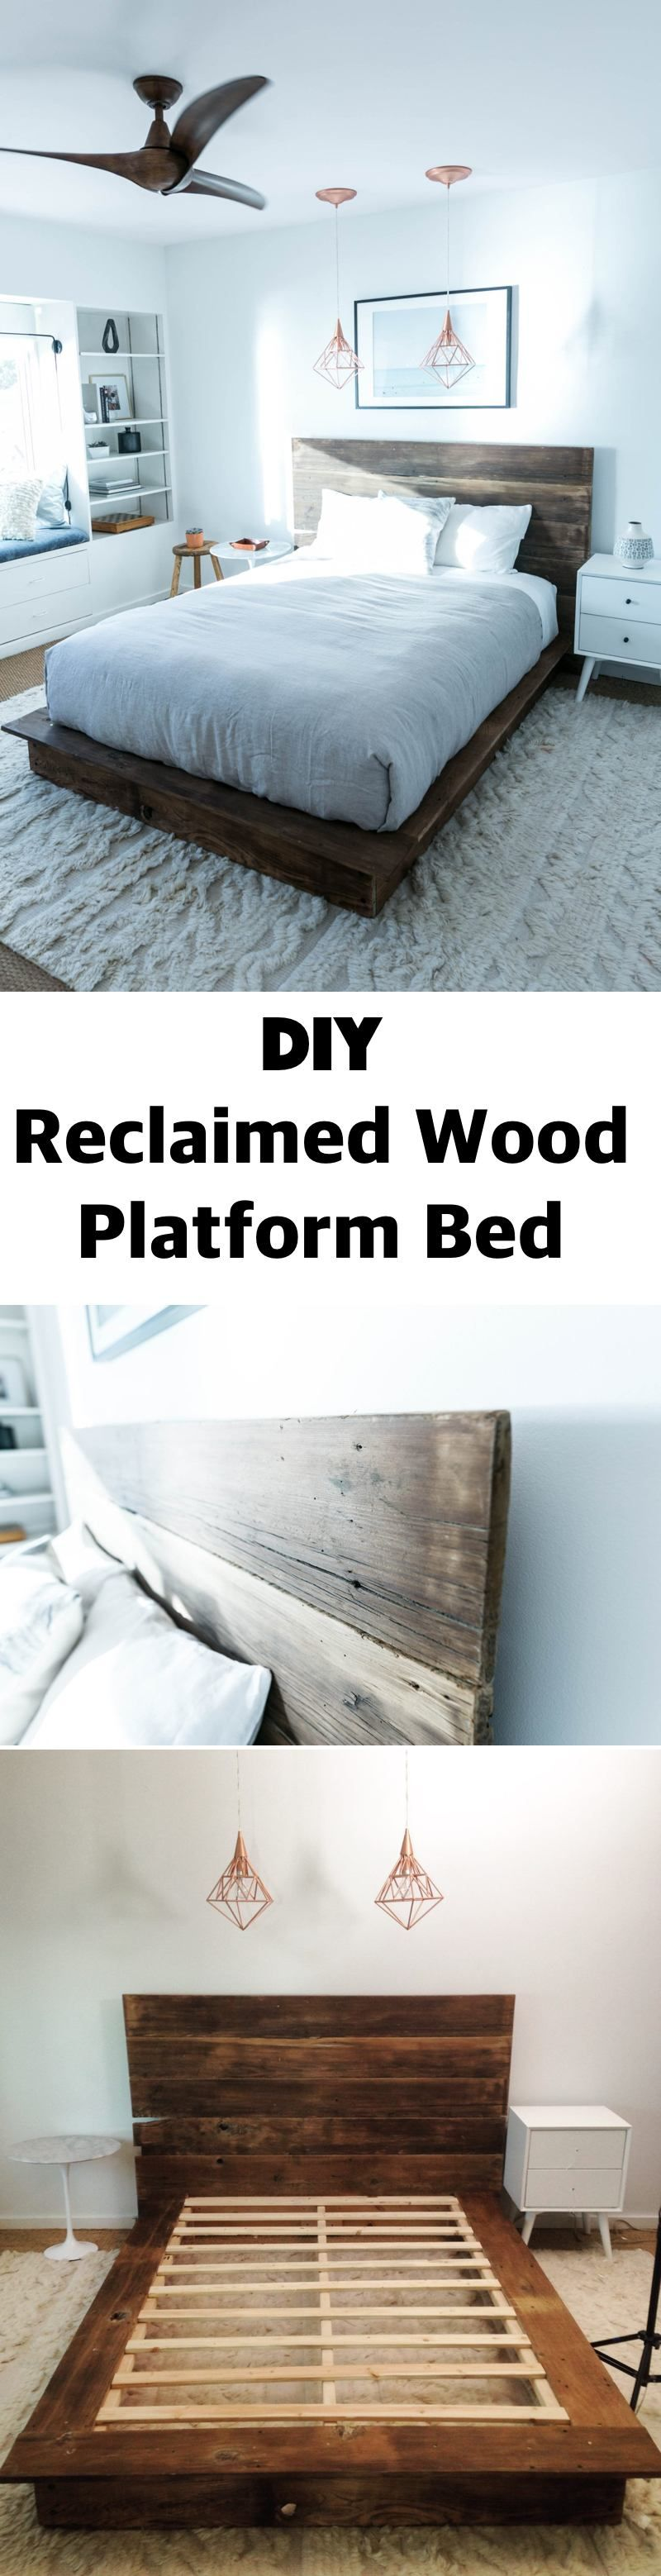 25 Easy DIY Bed Frame Projects to Upgrade Your Bedroom | Wood ...